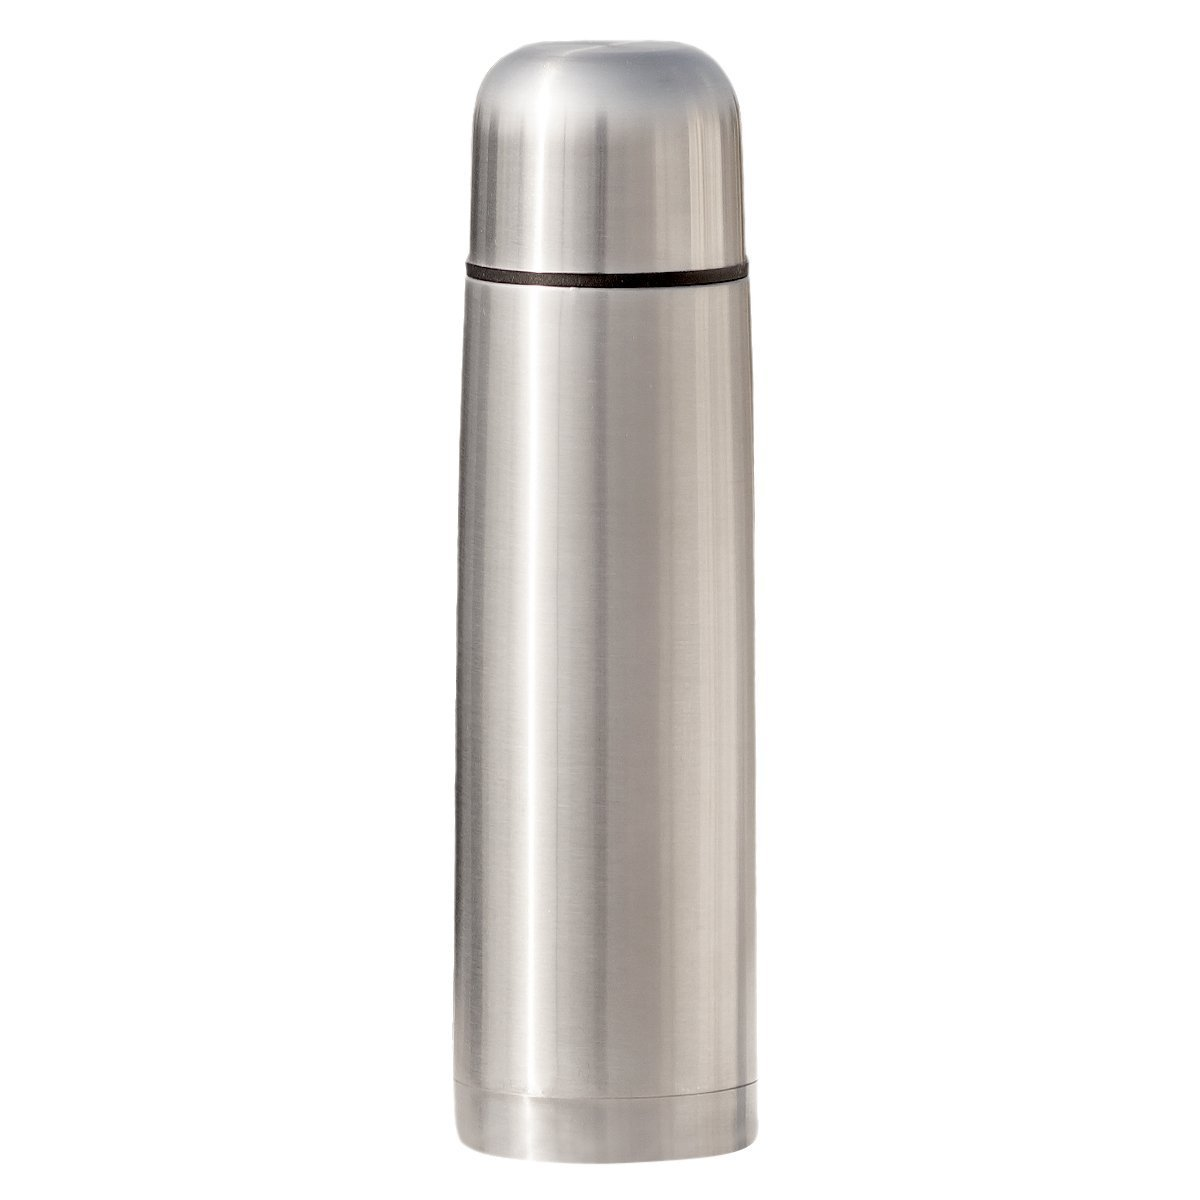 Best Stainless Steel Thermos Bottle - New Triple Wall Insulated - BPA Free - Hot Coffee or Cold Tea + Drink Cup Top - Perfect for Office, Camping and Outdoors - Fits Car Caddy or Backpack Multi Size